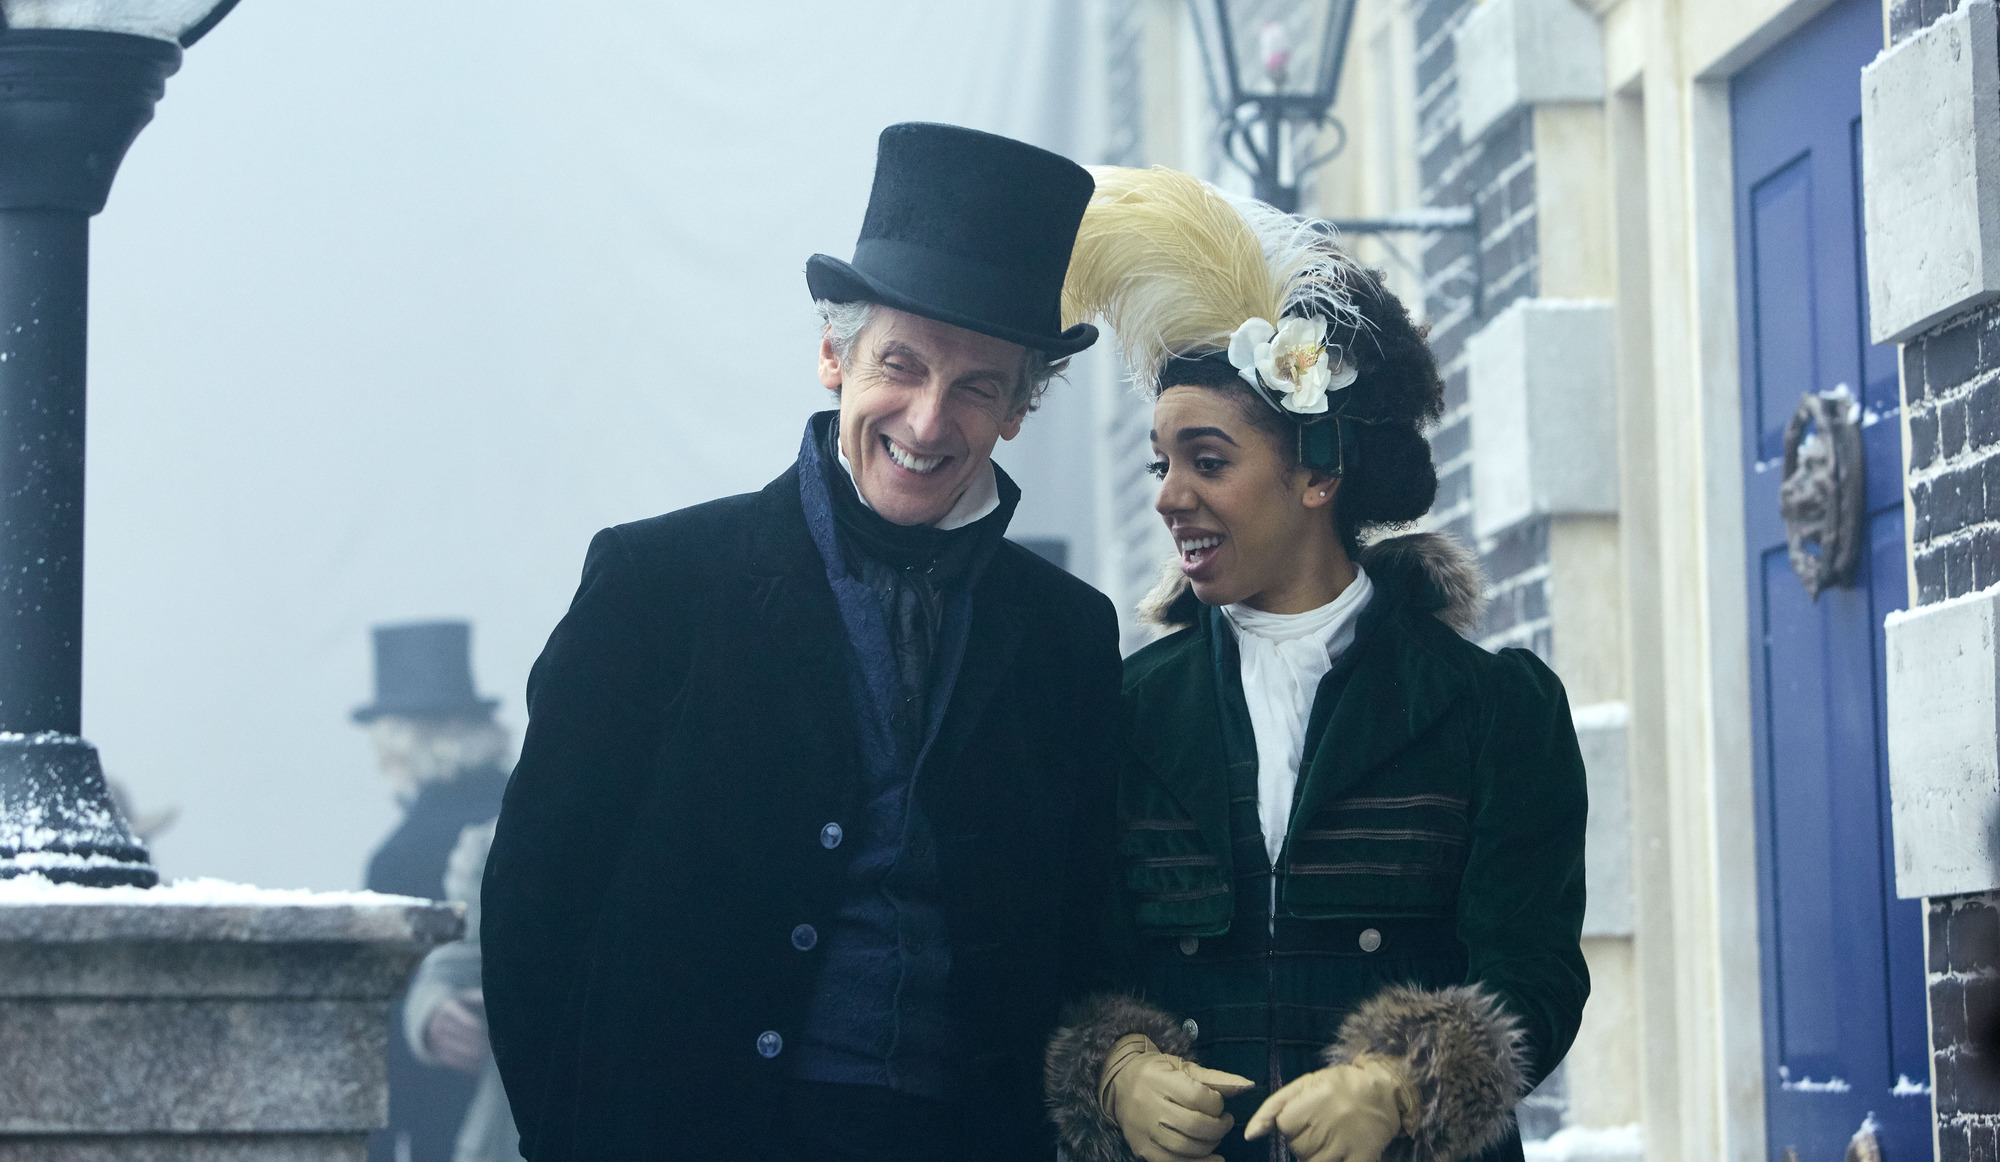 Doctor Who to explore whitewashing because there was 'no alternative' says writer Steven Moffat